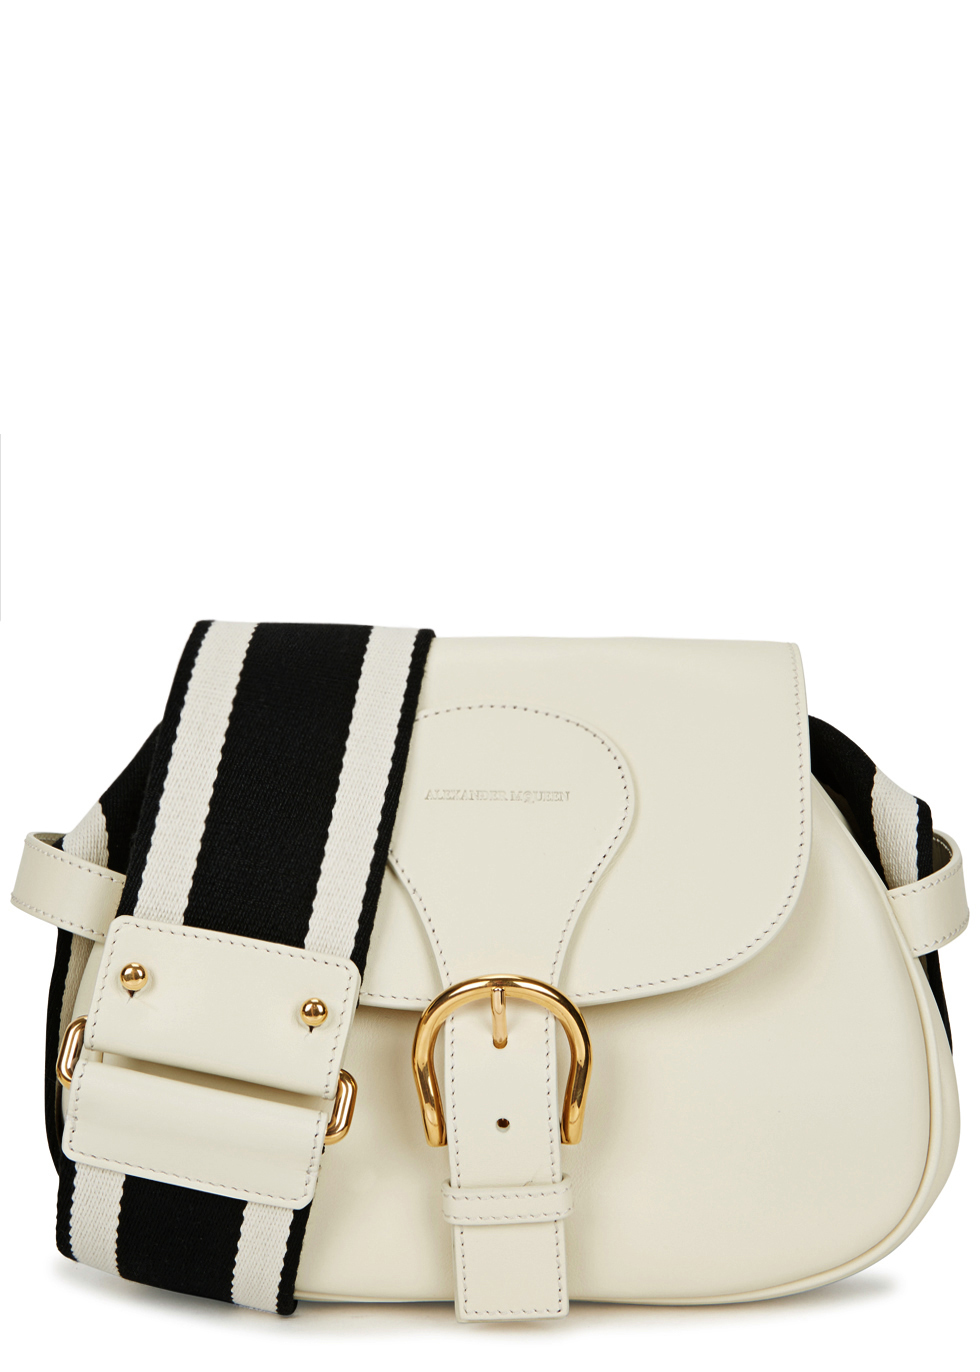 Ivory Leather Shoulder Bag - predominant colour: ivory/cream; occasions: casual, creative work; type of pattern: light; style: shoulder; length: shoulder (tucks under arm); size: small; material: leather; pattern: plain; finish: plain; wardrobe: investment; season: a/w 2016